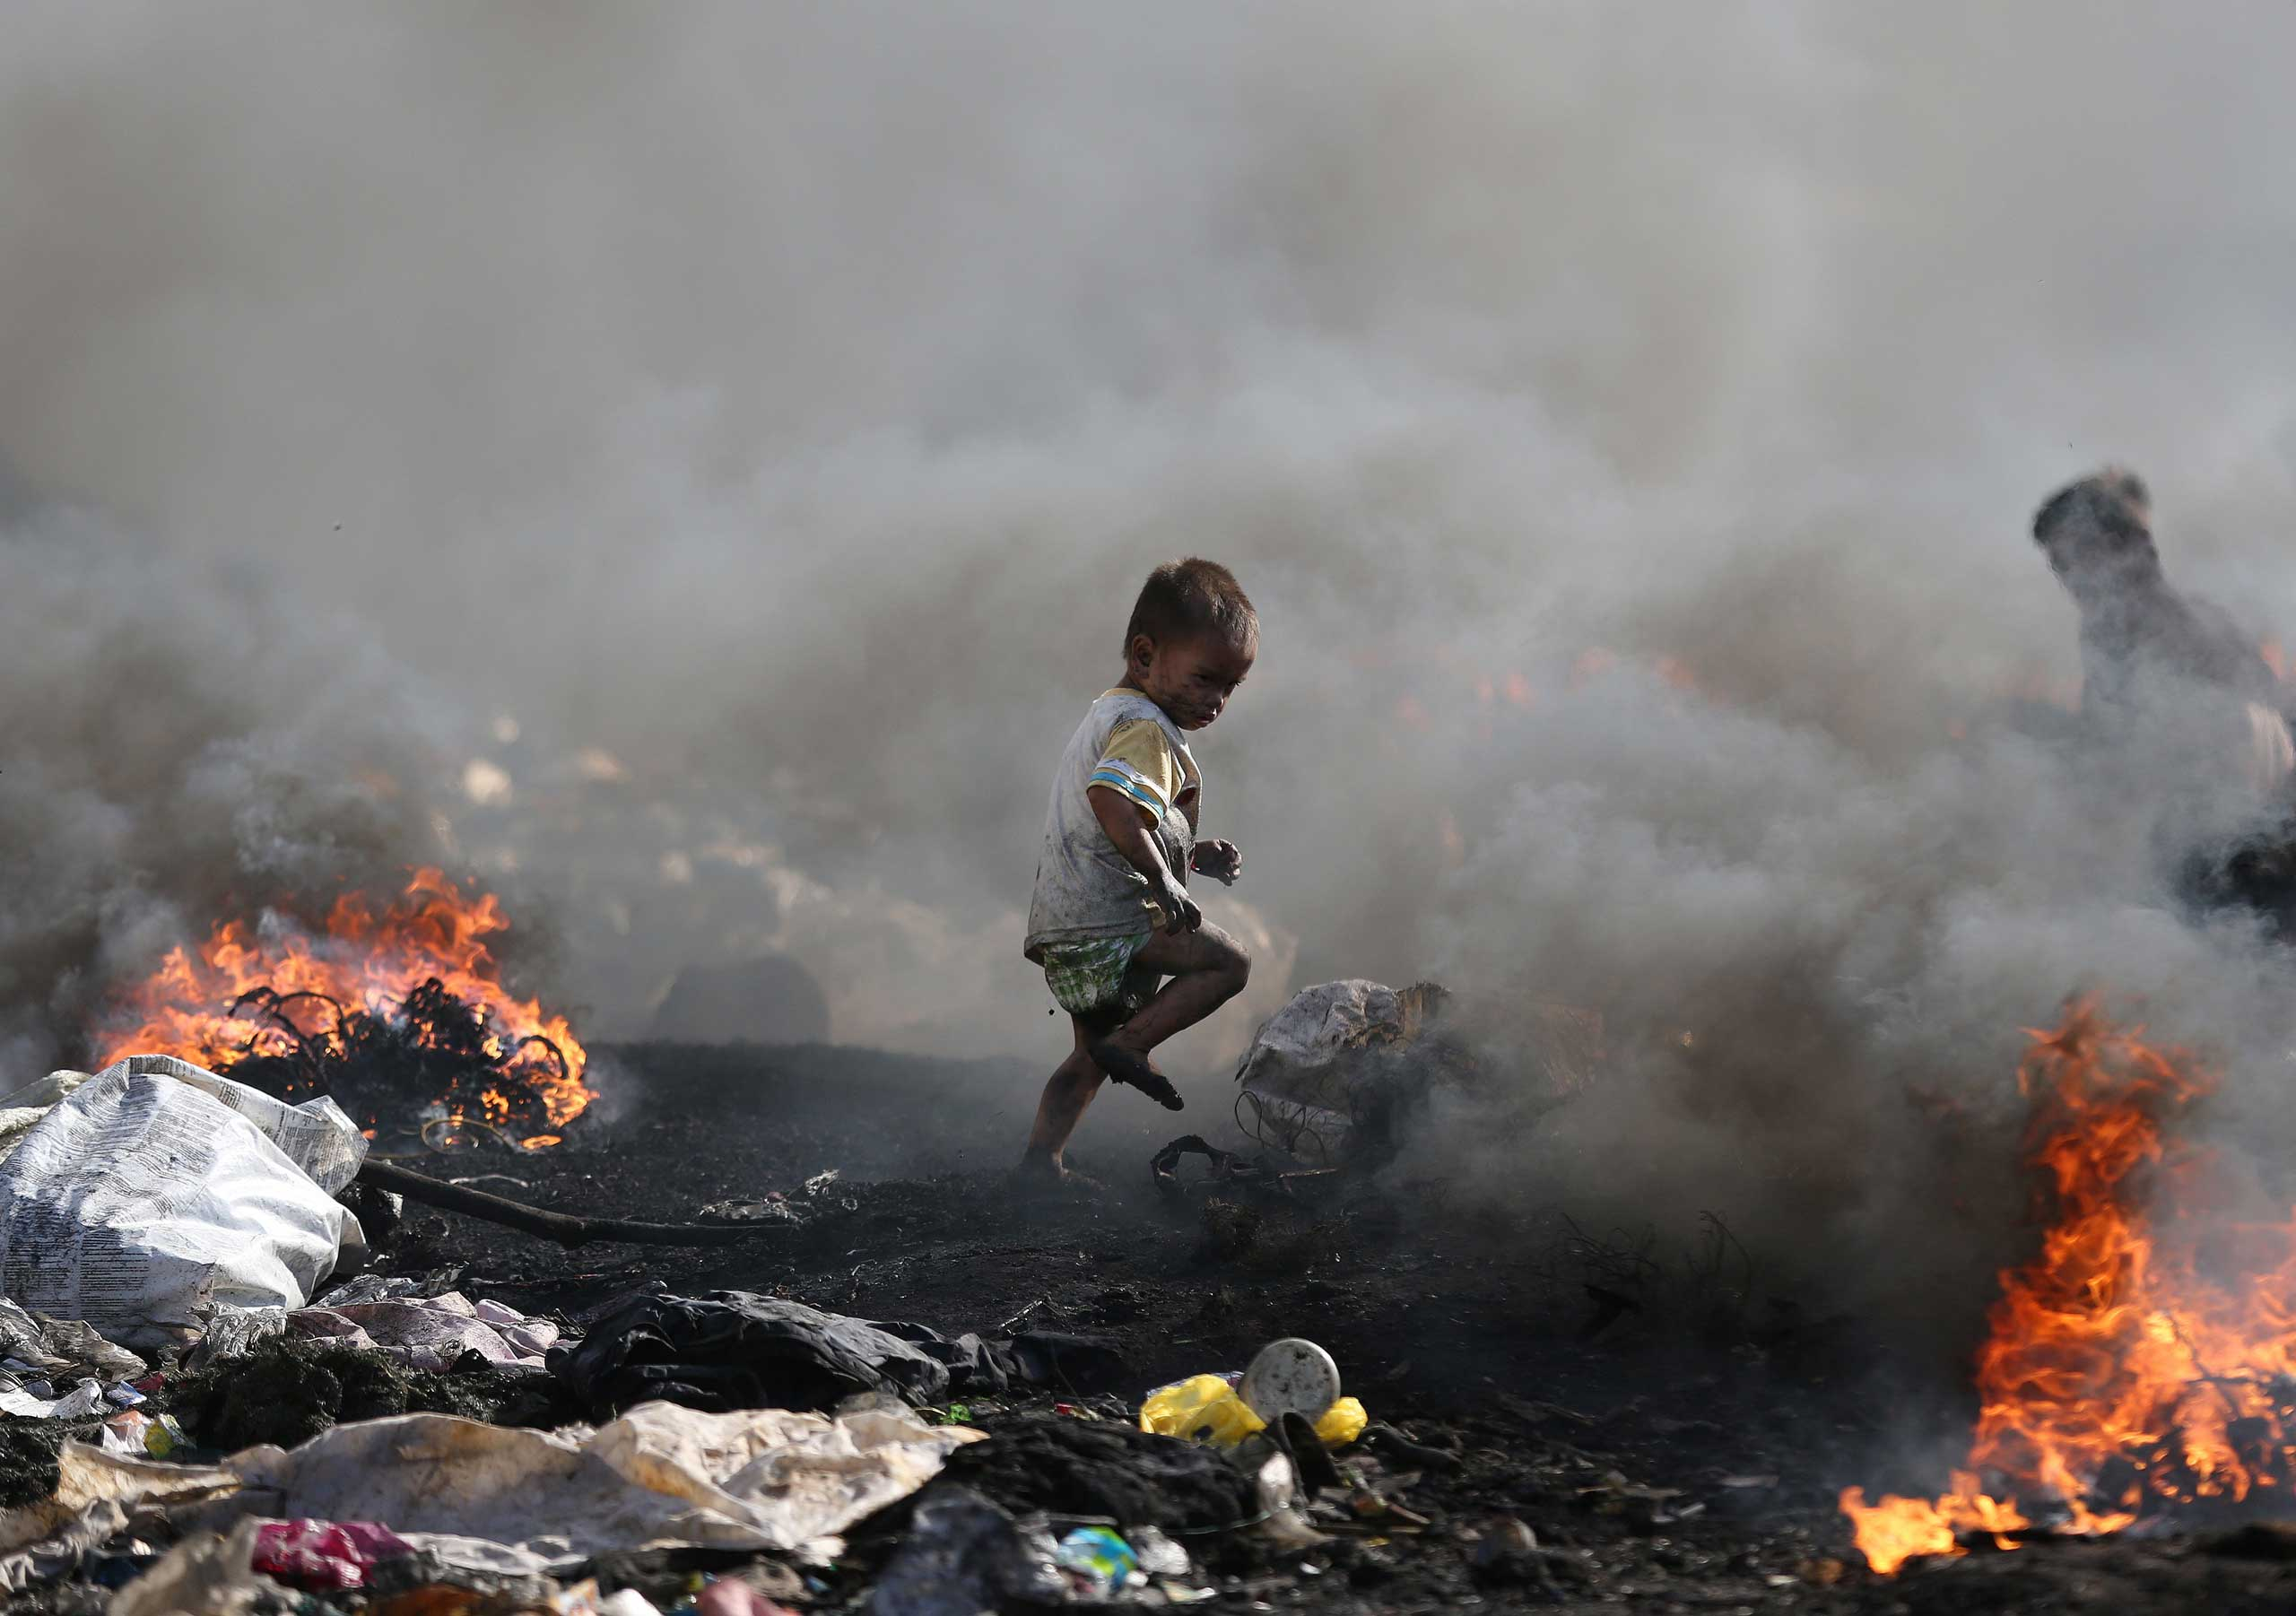 A Filipino boy runs amid black smoke billowing from electrical wires being burned by scavengers at a dumpsite in Manila, Philippines, Jan. 8, 2015.